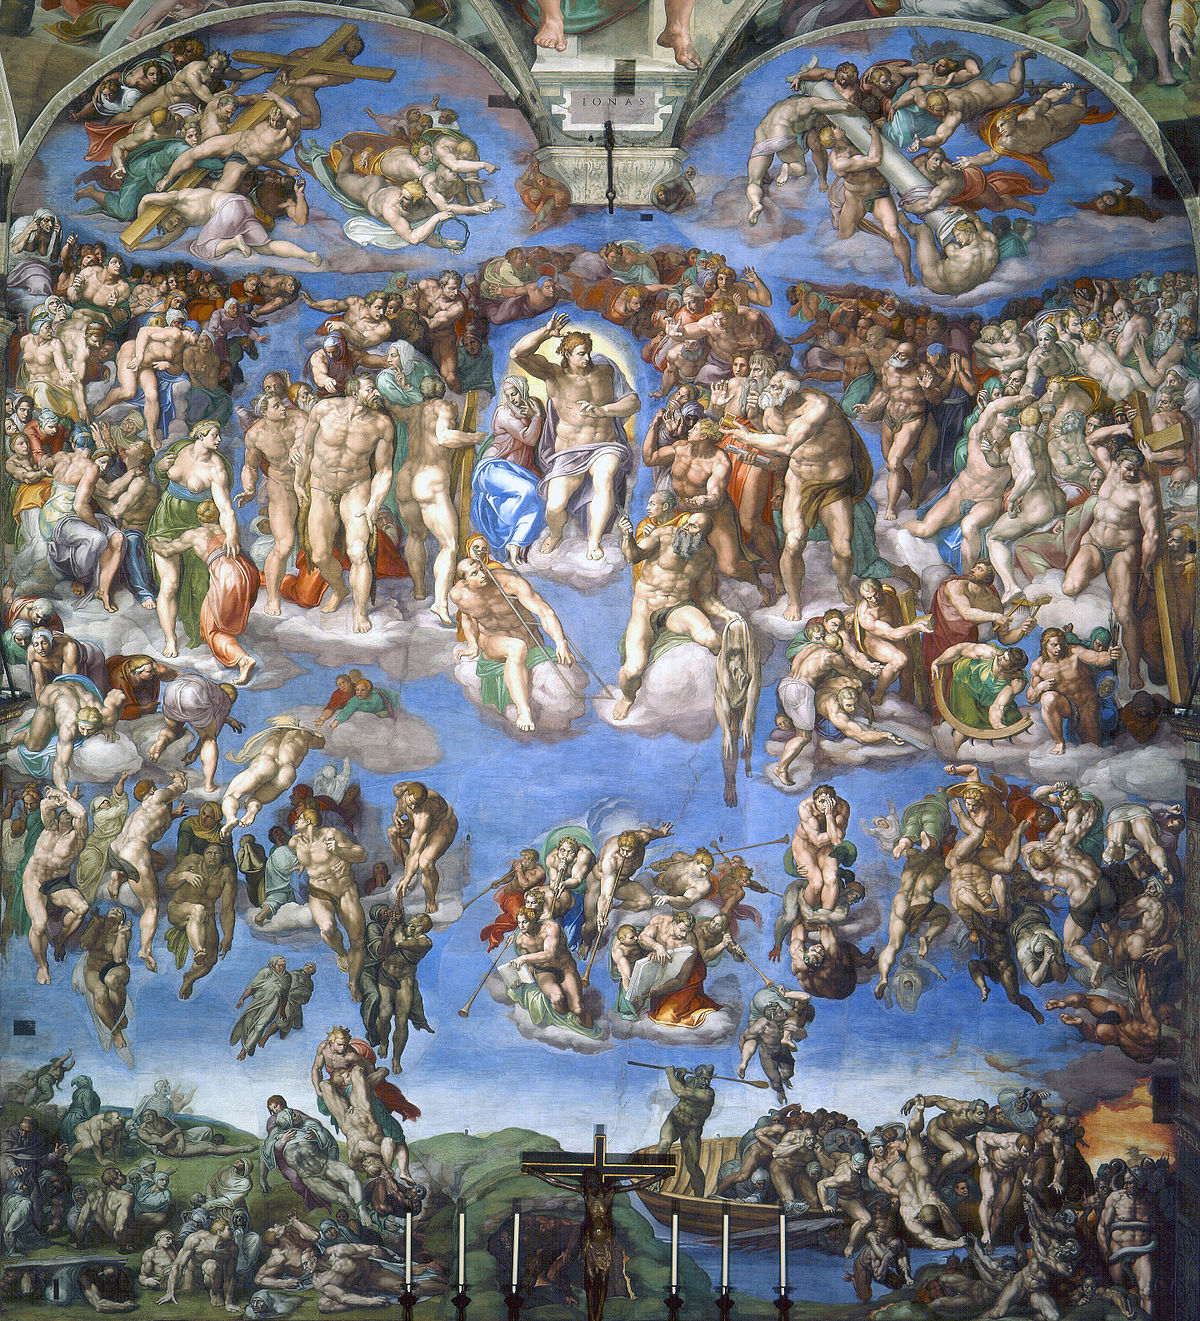 https://upload.wikimedia.org/wikipedia/commons/thumb/1/18/Last_Judgement_%28Michelangelo%29.jpg/1200px-Last_Judgement_%28Michelangelo%29.jpg